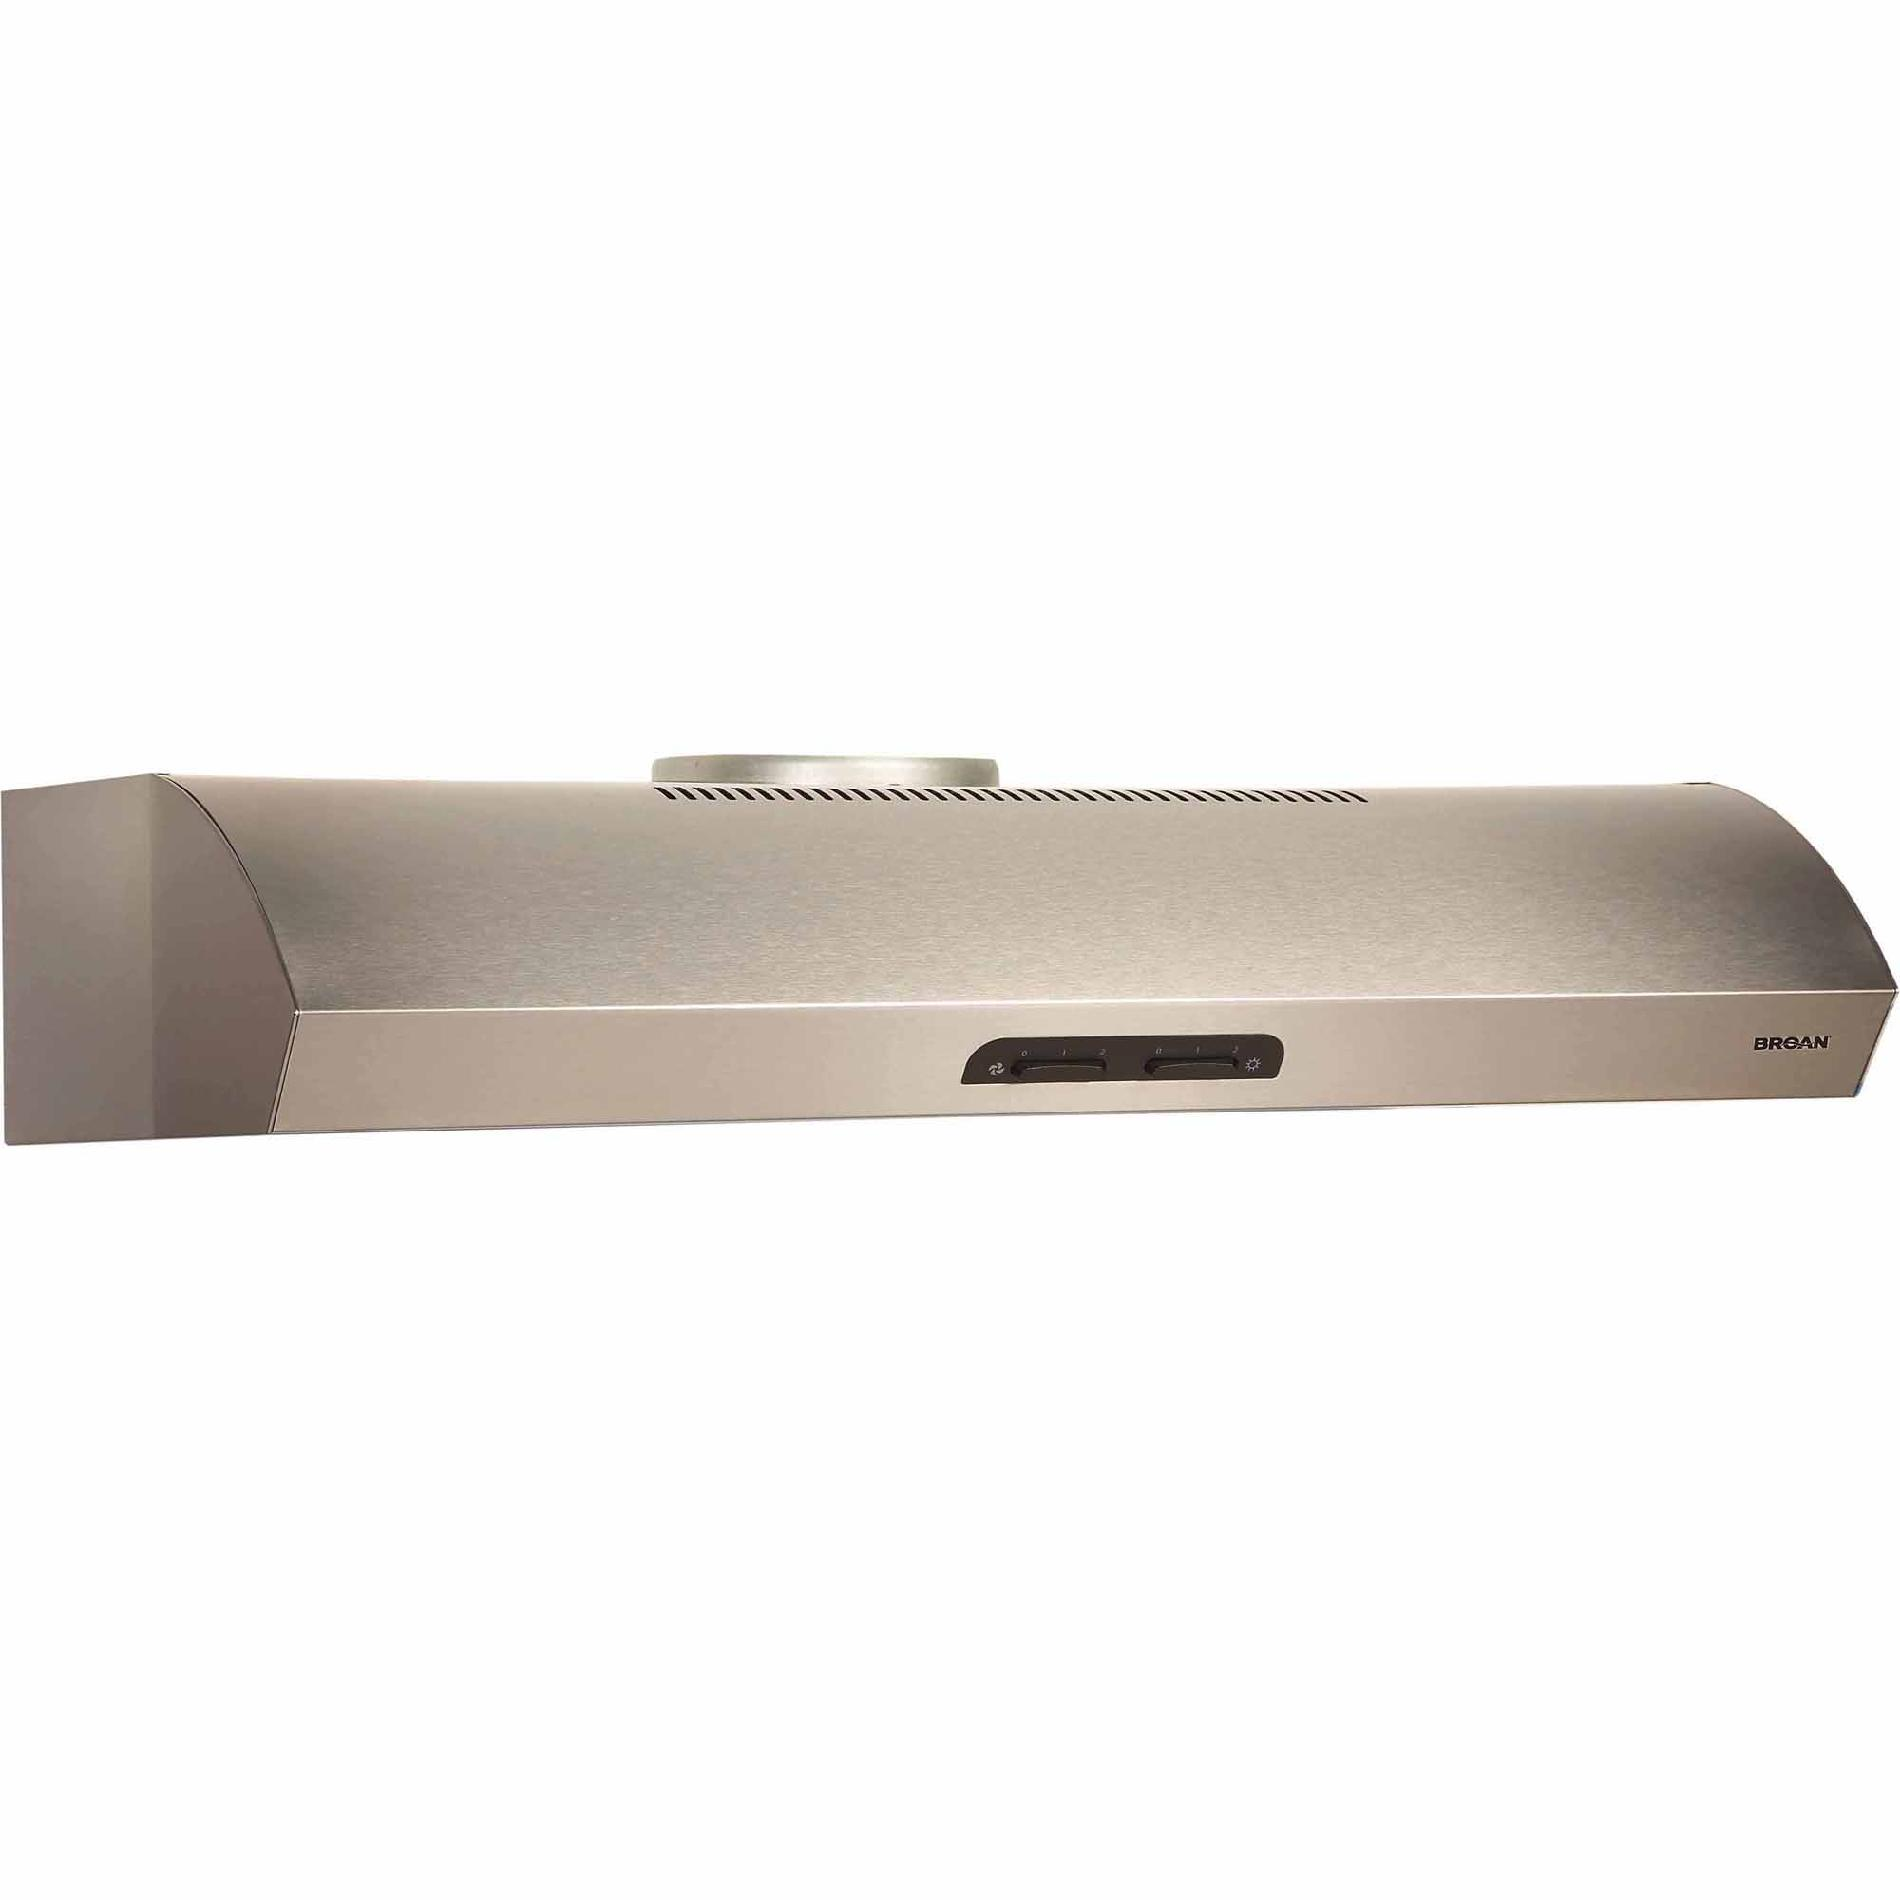 "Broan QP130SS 30"" 300 CFM Under Cabinet Range Hood - Stainless Steel"